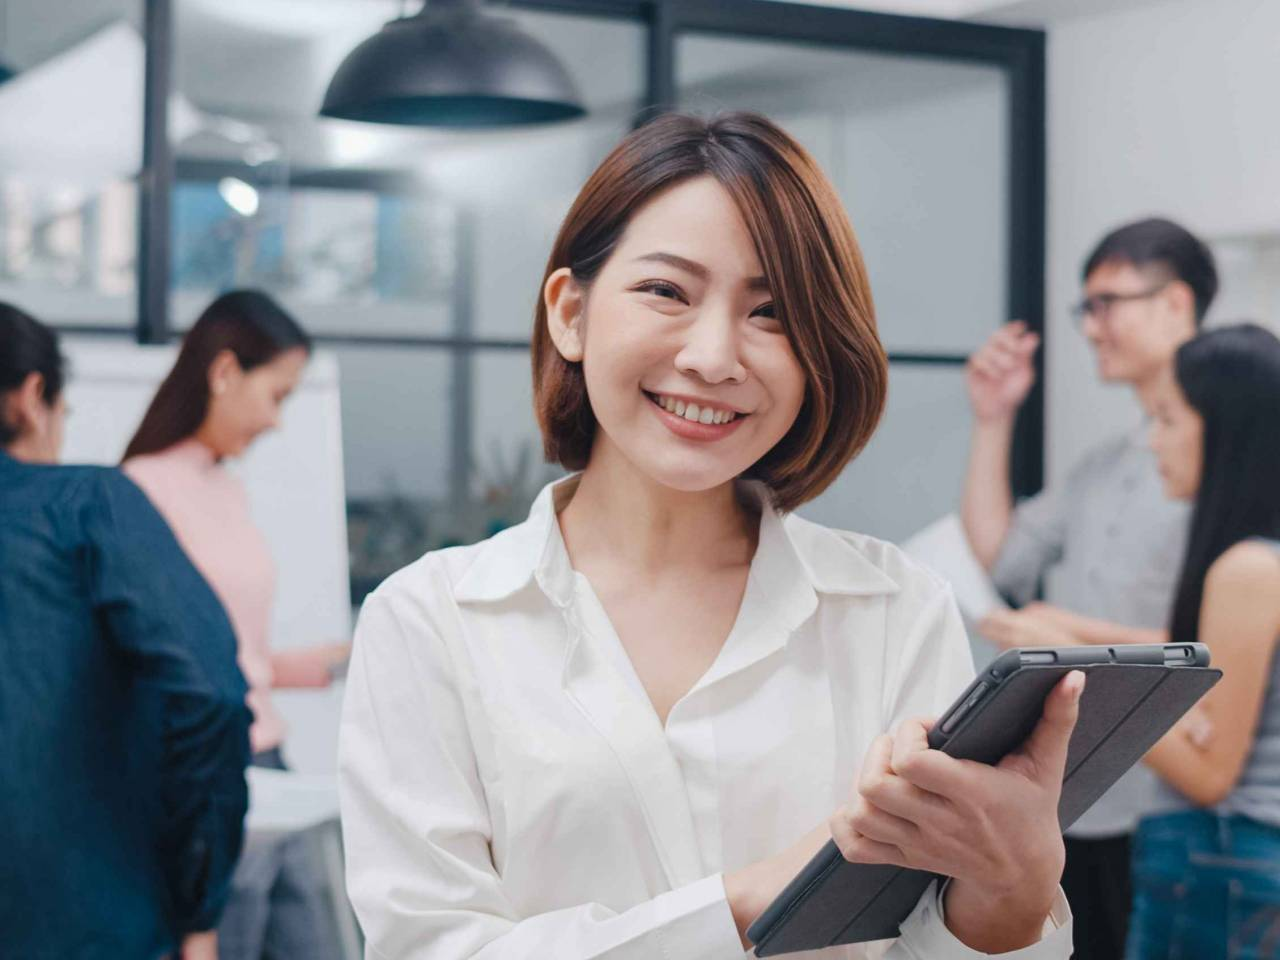 Business woman smiling and holding a tablet in the office